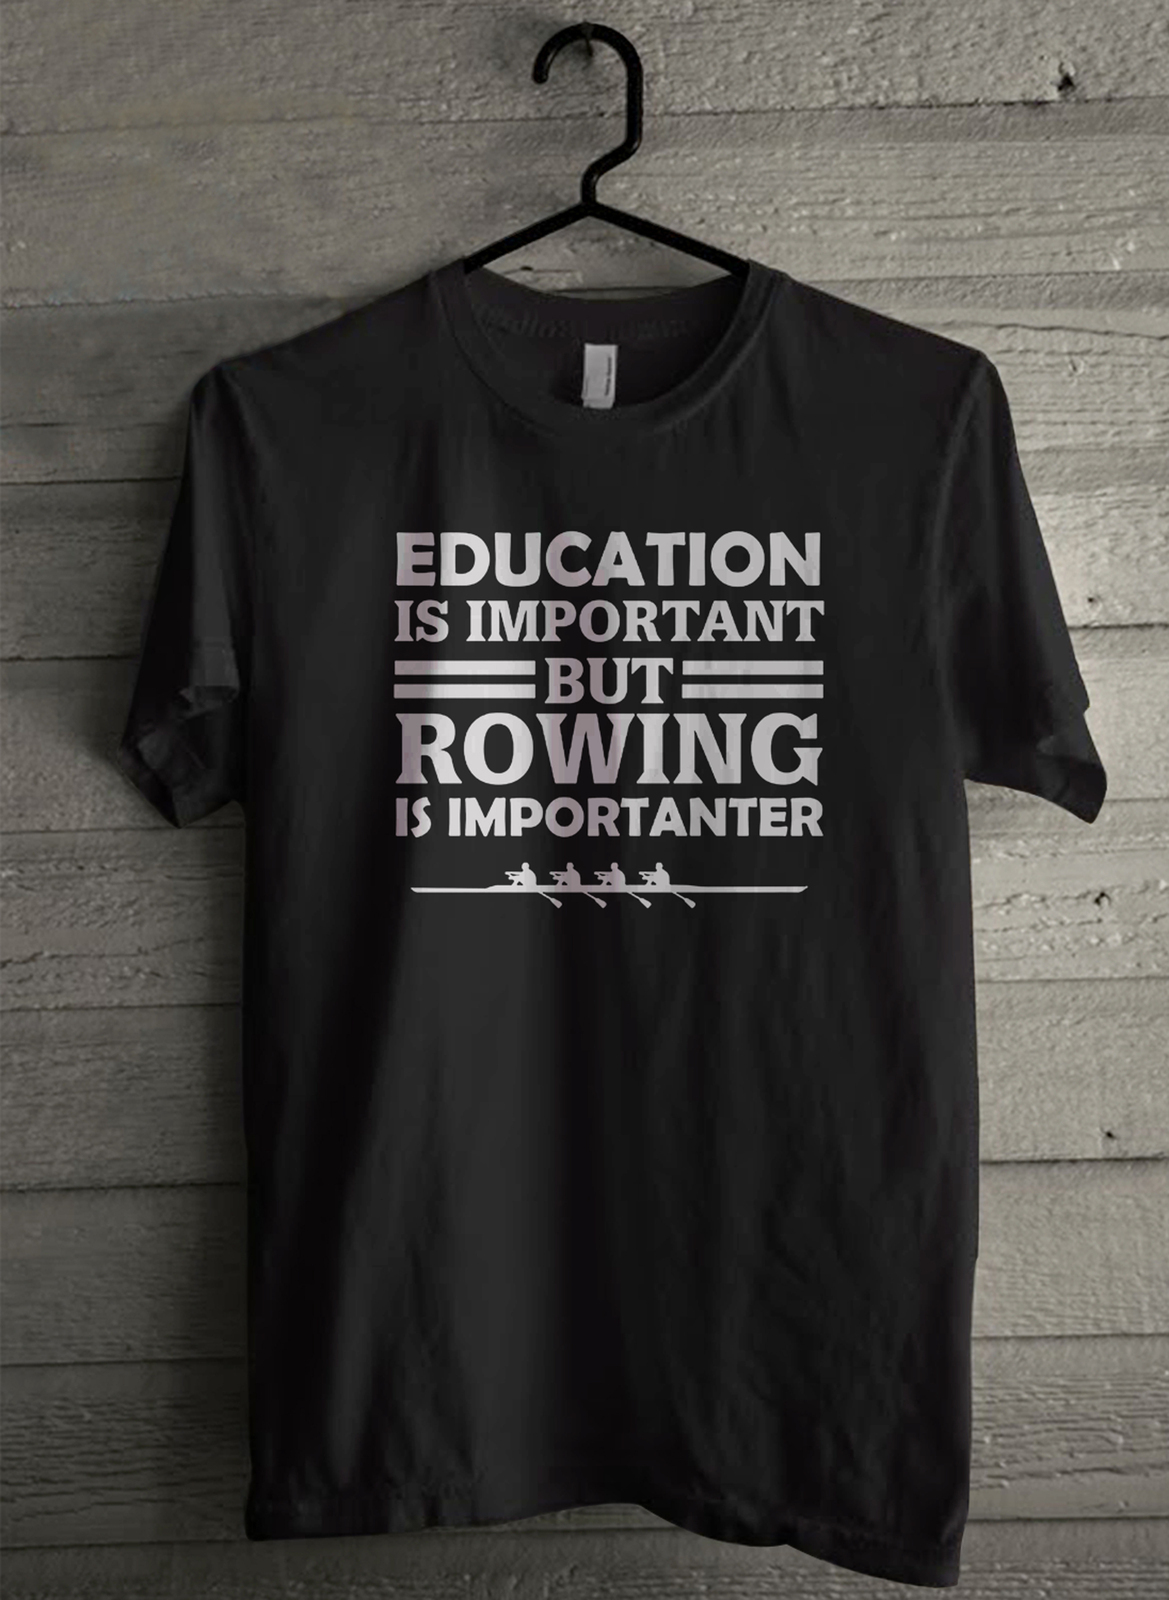 Primary image for Education Is Important But Rowing Is Importanter Men's T-Shirt - Custom (3476)